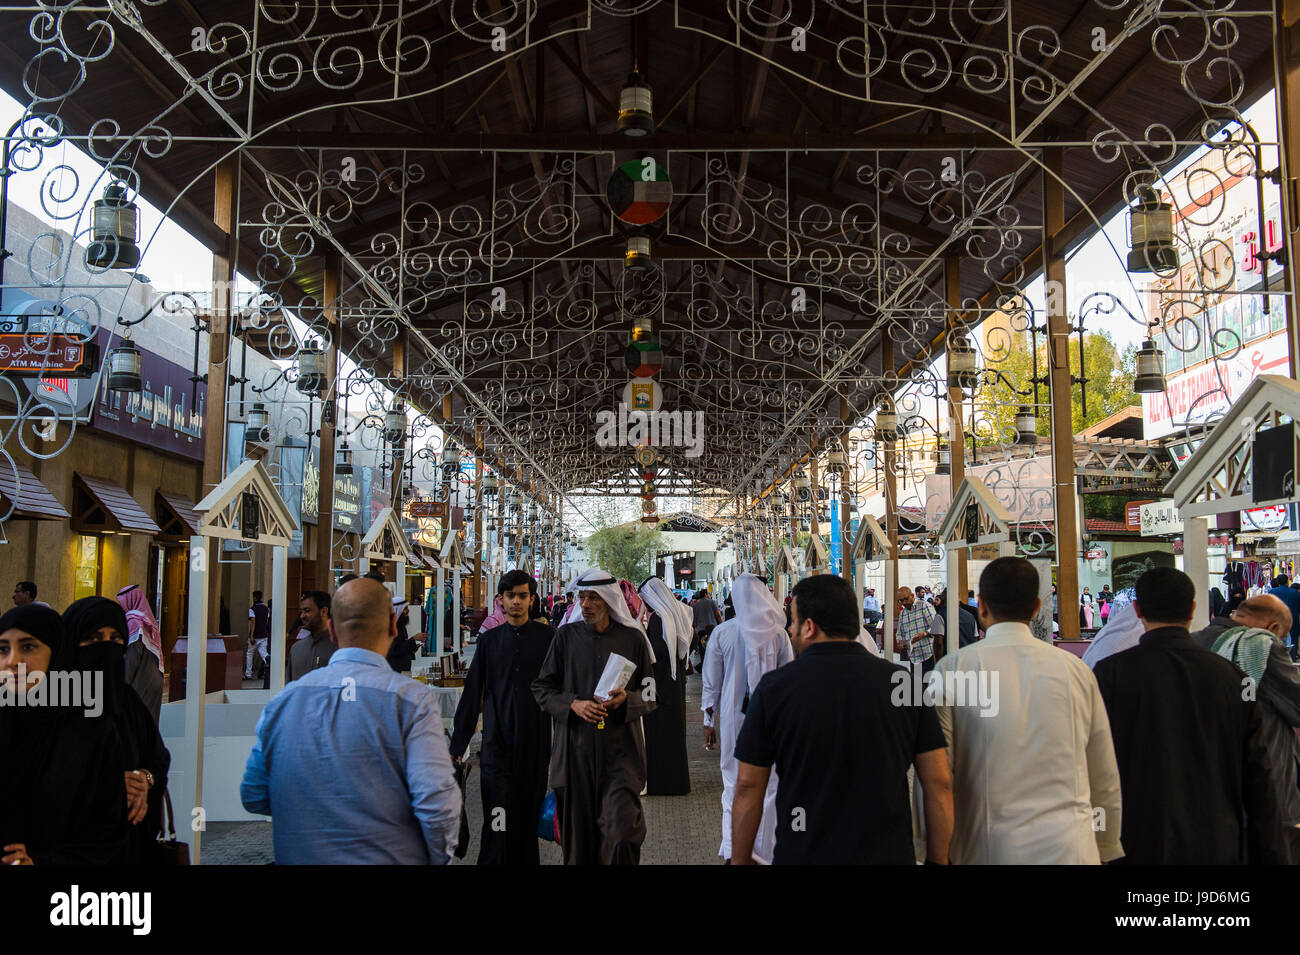 Beautiful bazaar, Souk Al-Mubarakiya, Kuwait City, Kuwait, Middle East - Stock Image